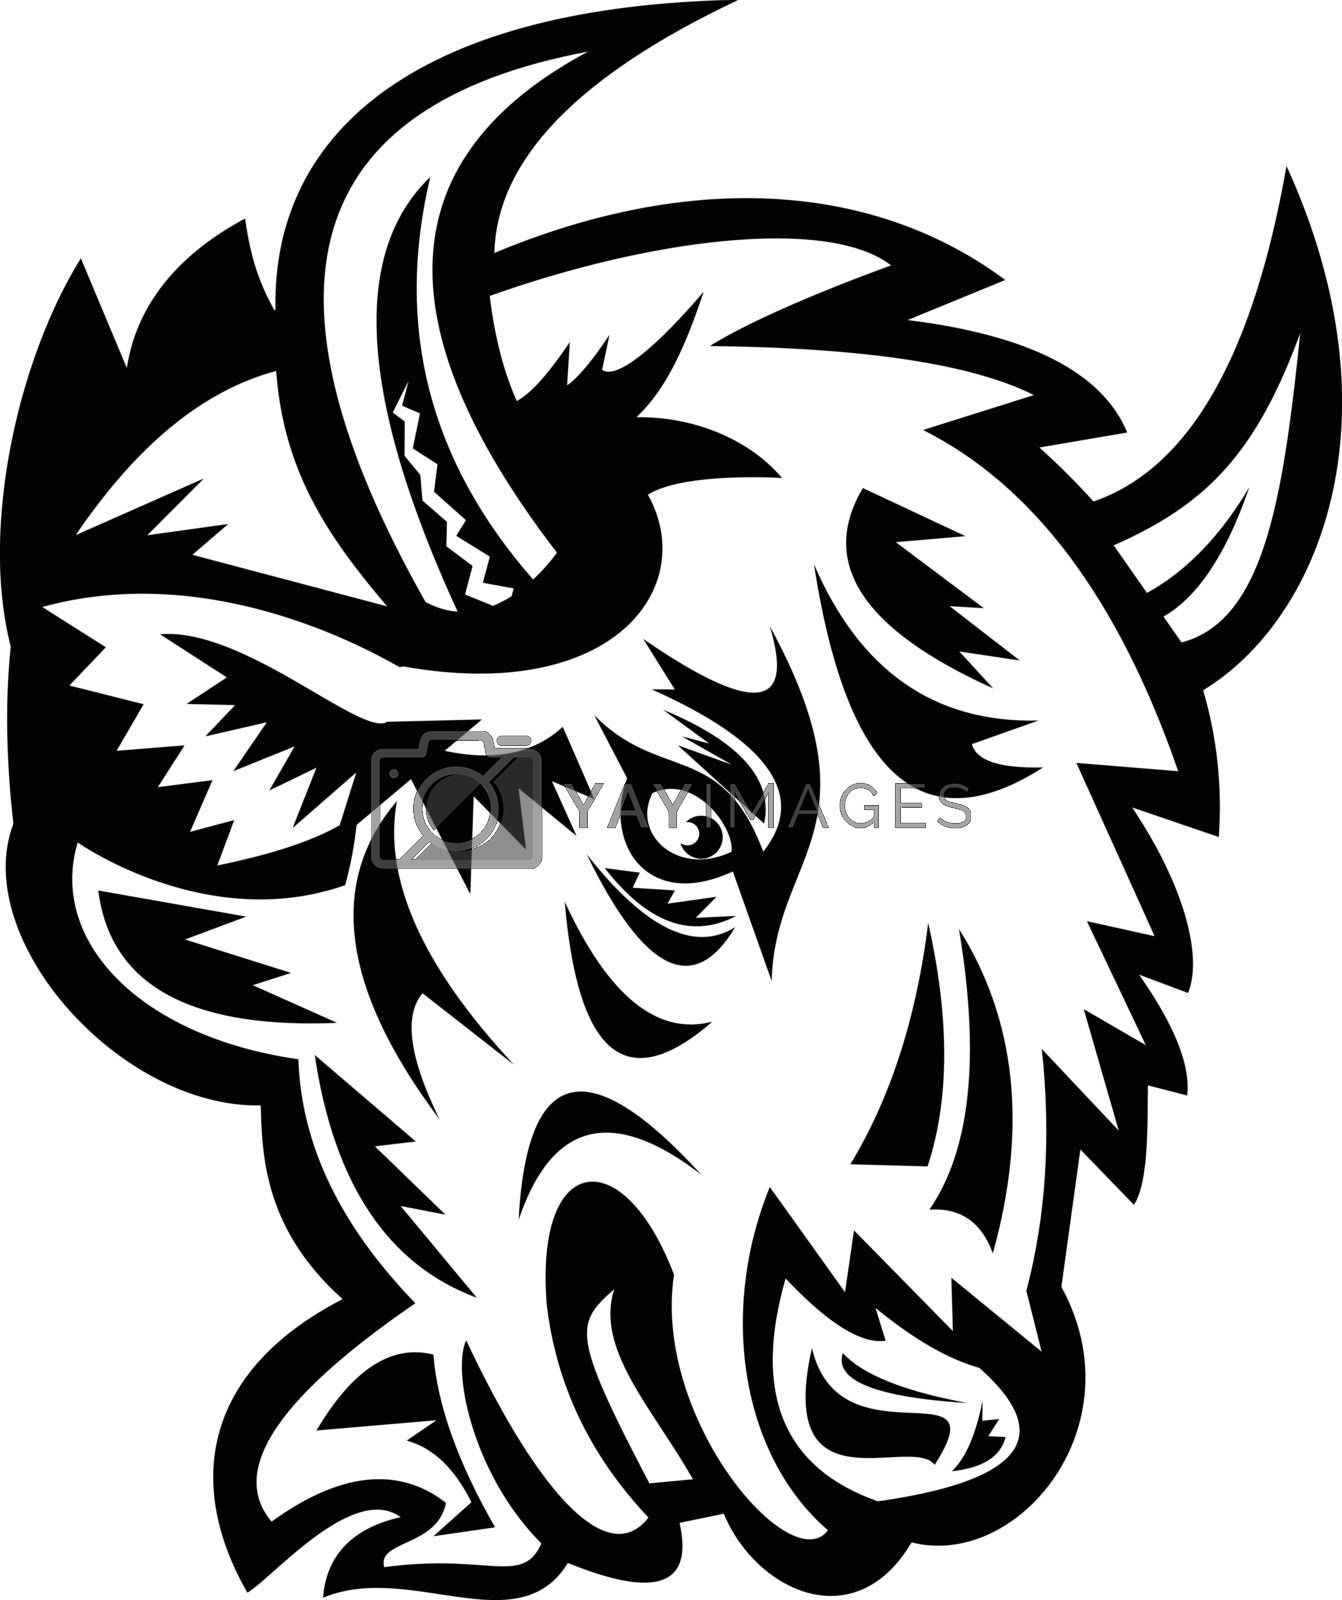 Mascot illustration of head of an angry North American bison or American buffalo viewed from side on isolated background in retro black and white style.